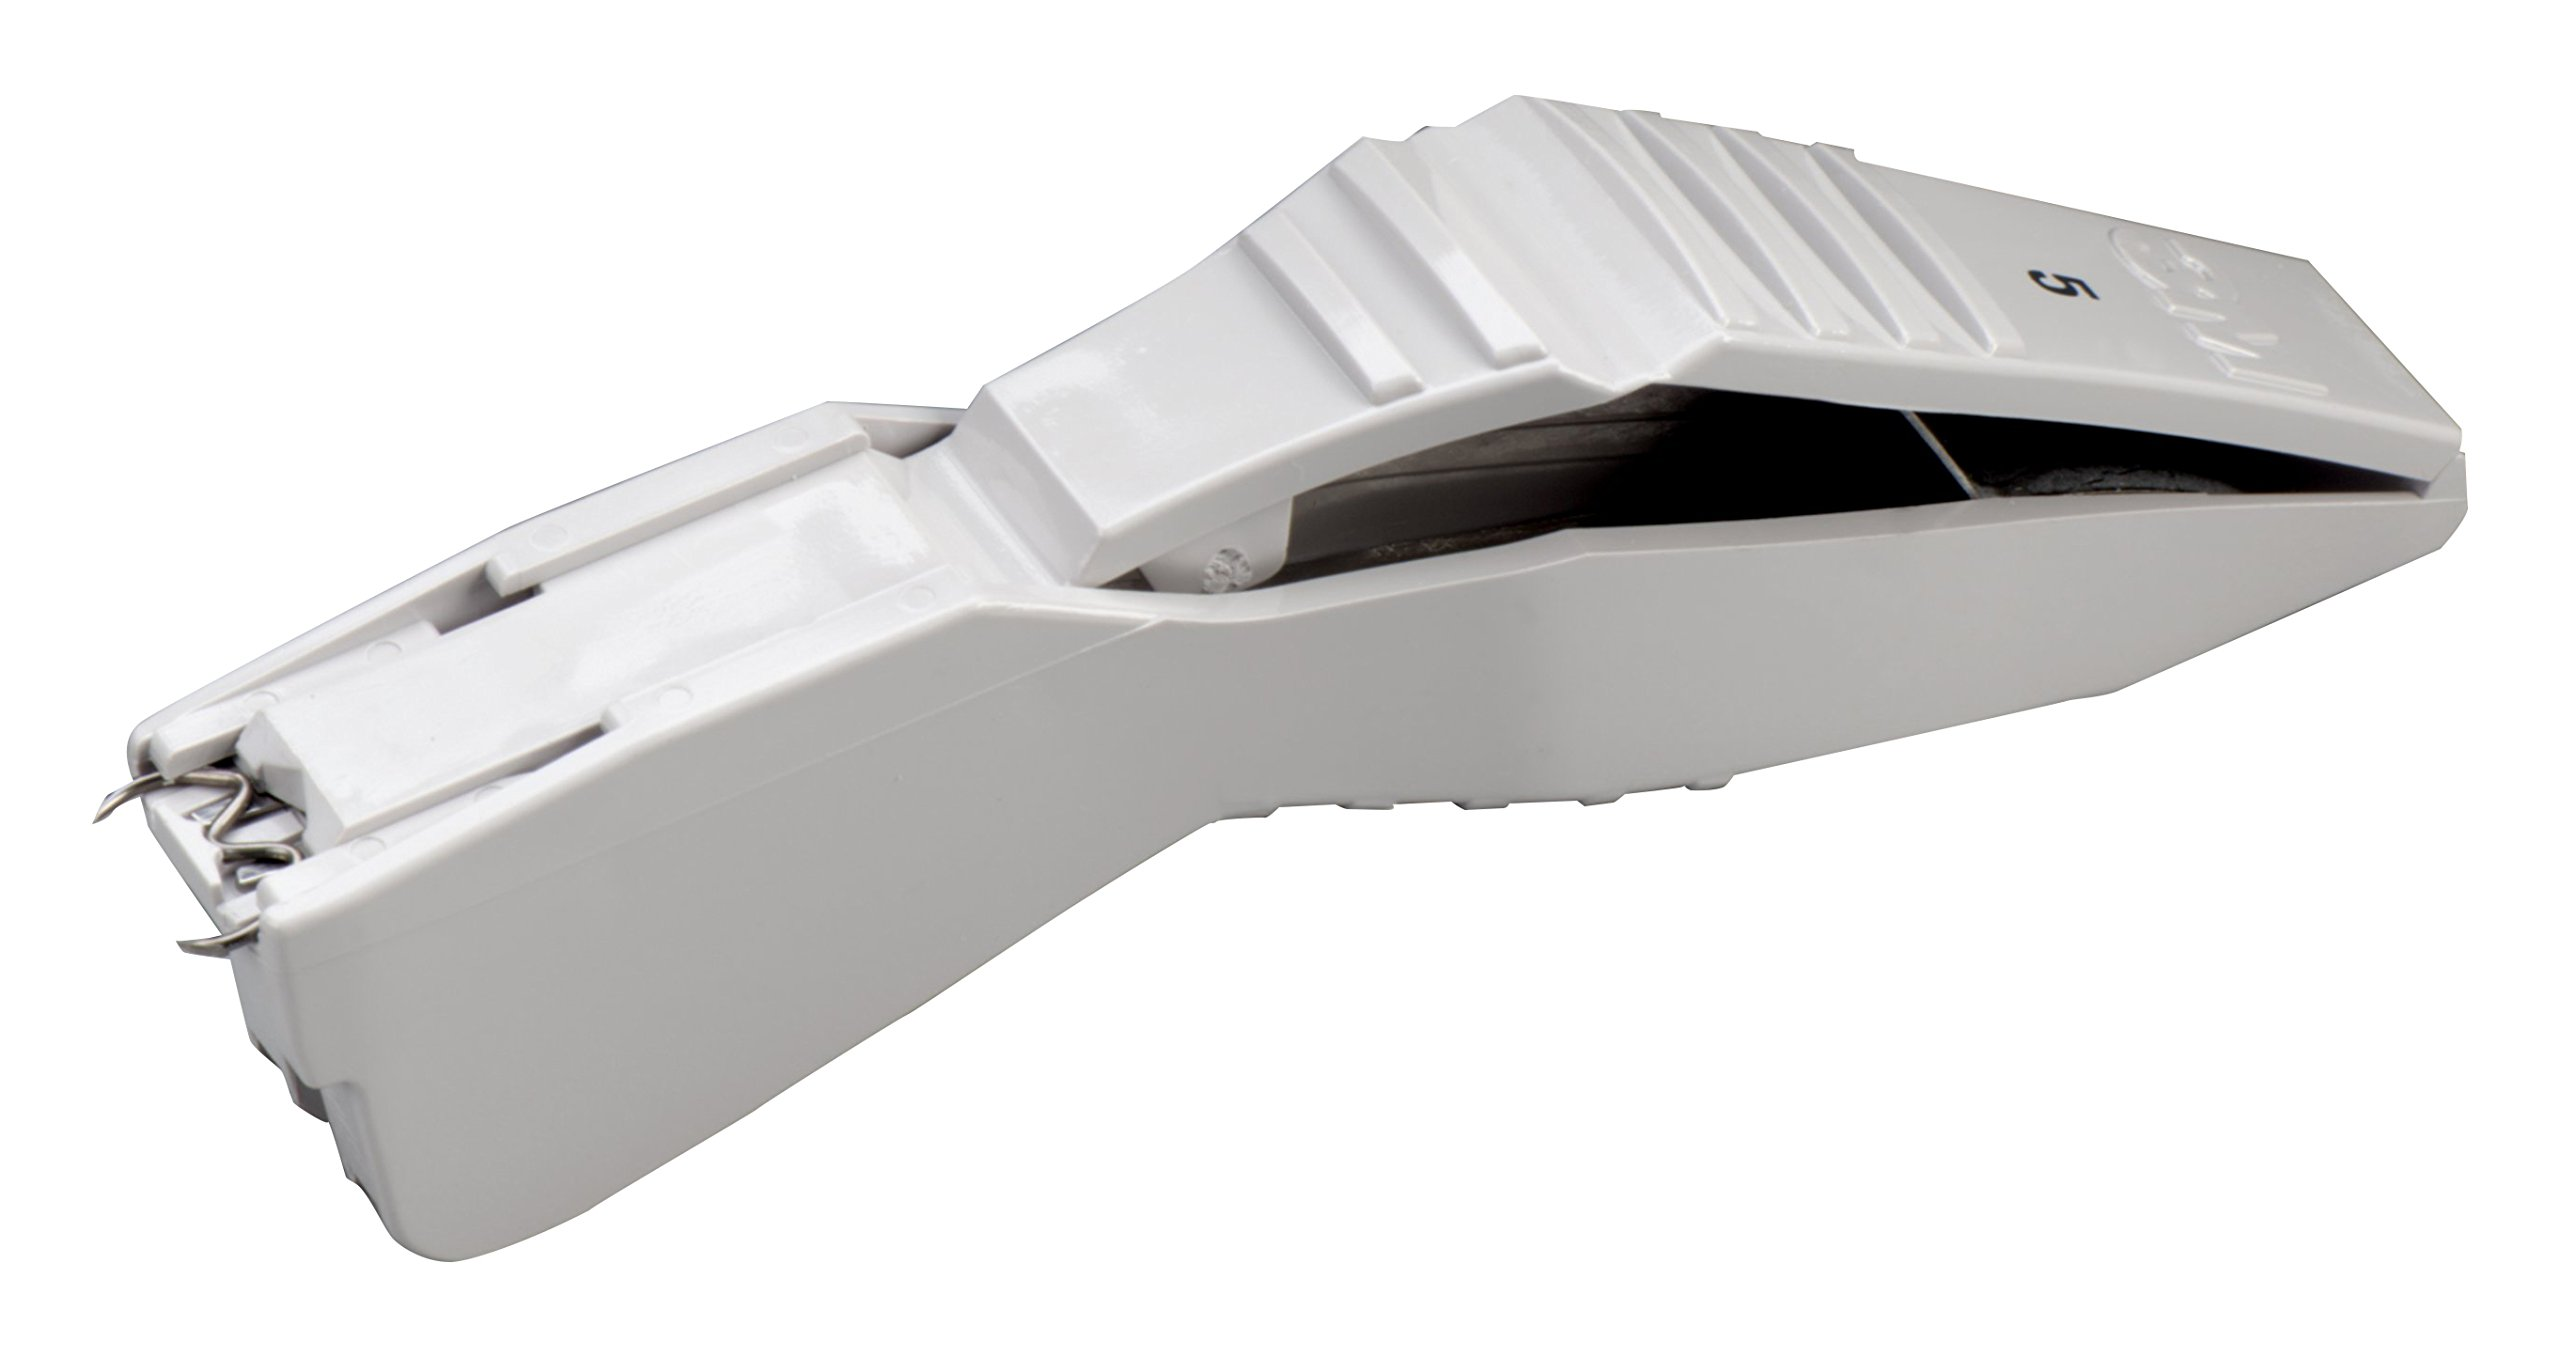 3M DS-5 Precise Multi-Shot DS Disposable Skin Stapler (Pack of 12) by 3M